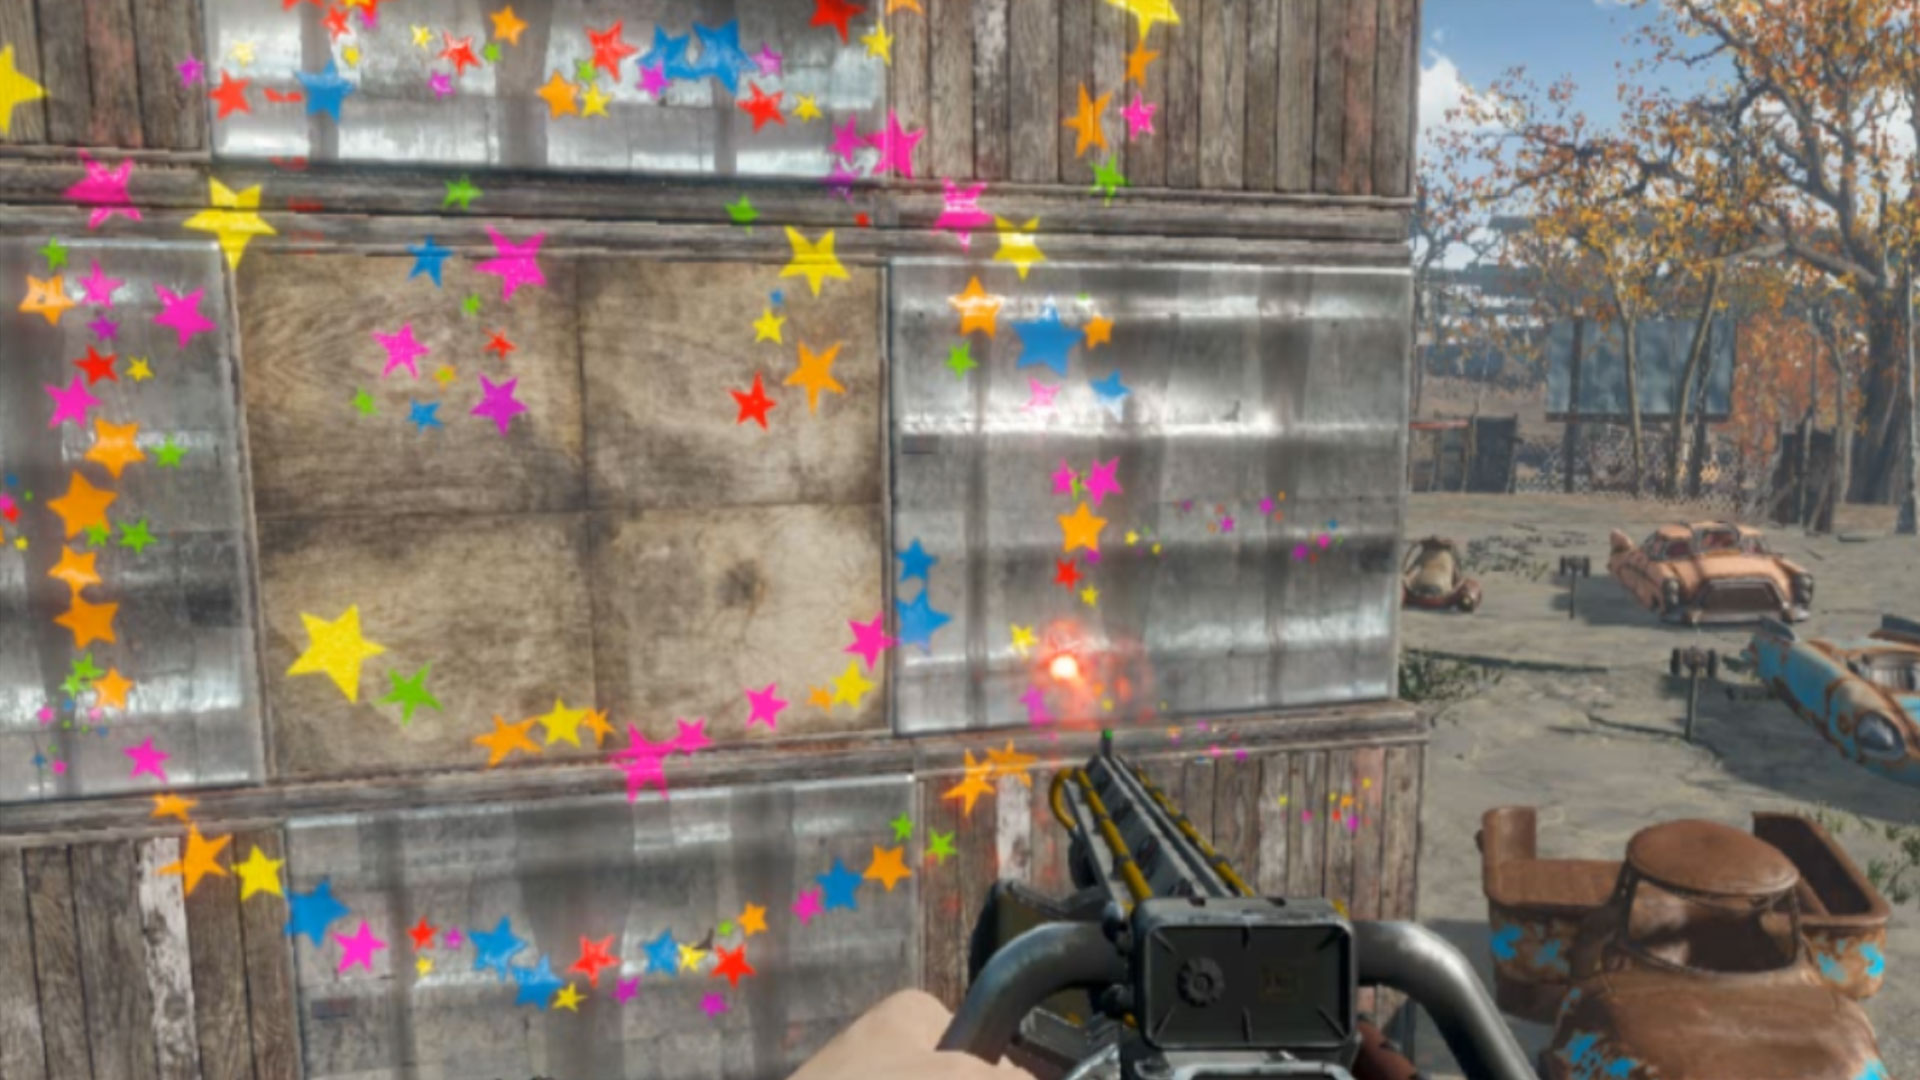 Fallout 4 Gunfetti Impact Decal Replacer Mod